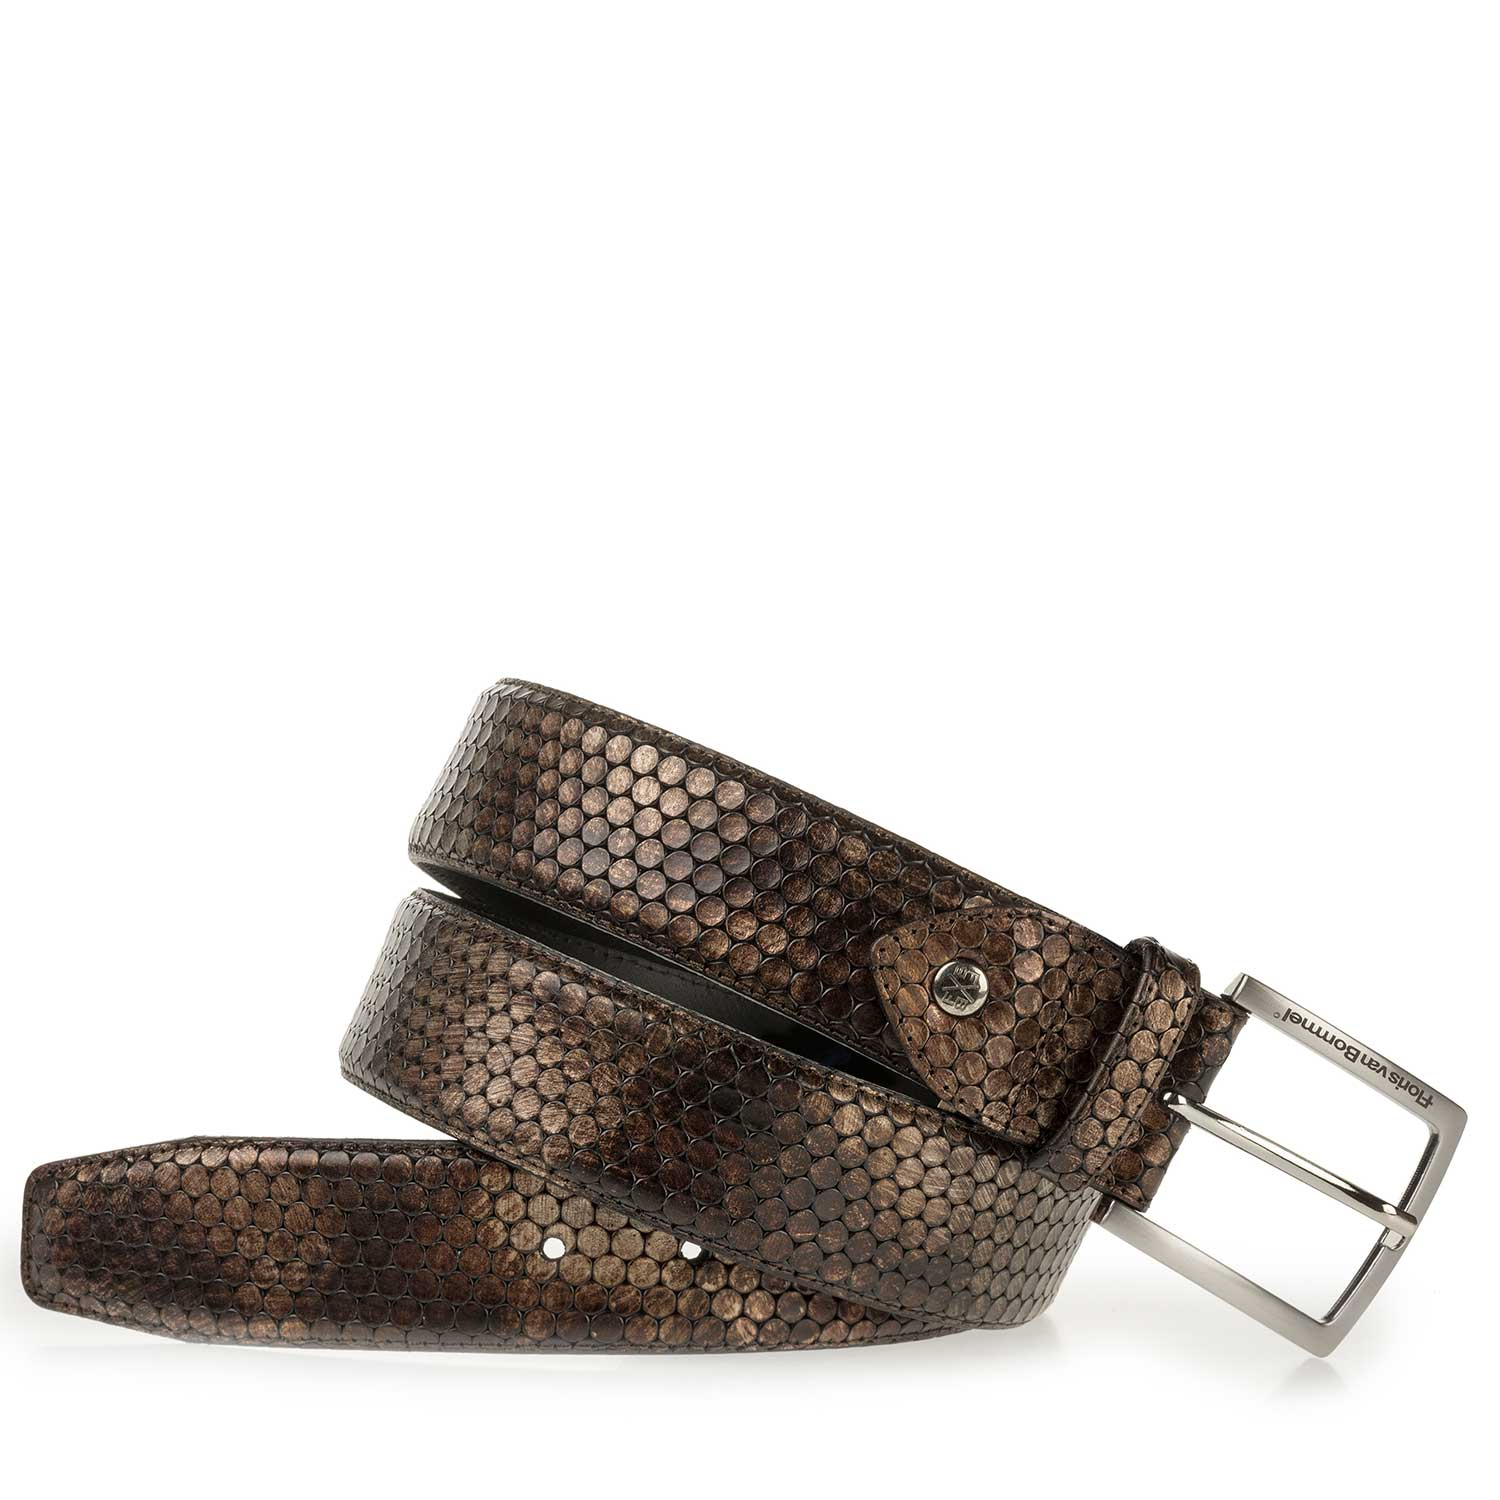 75189/40 - Brown leather belt with metallic print